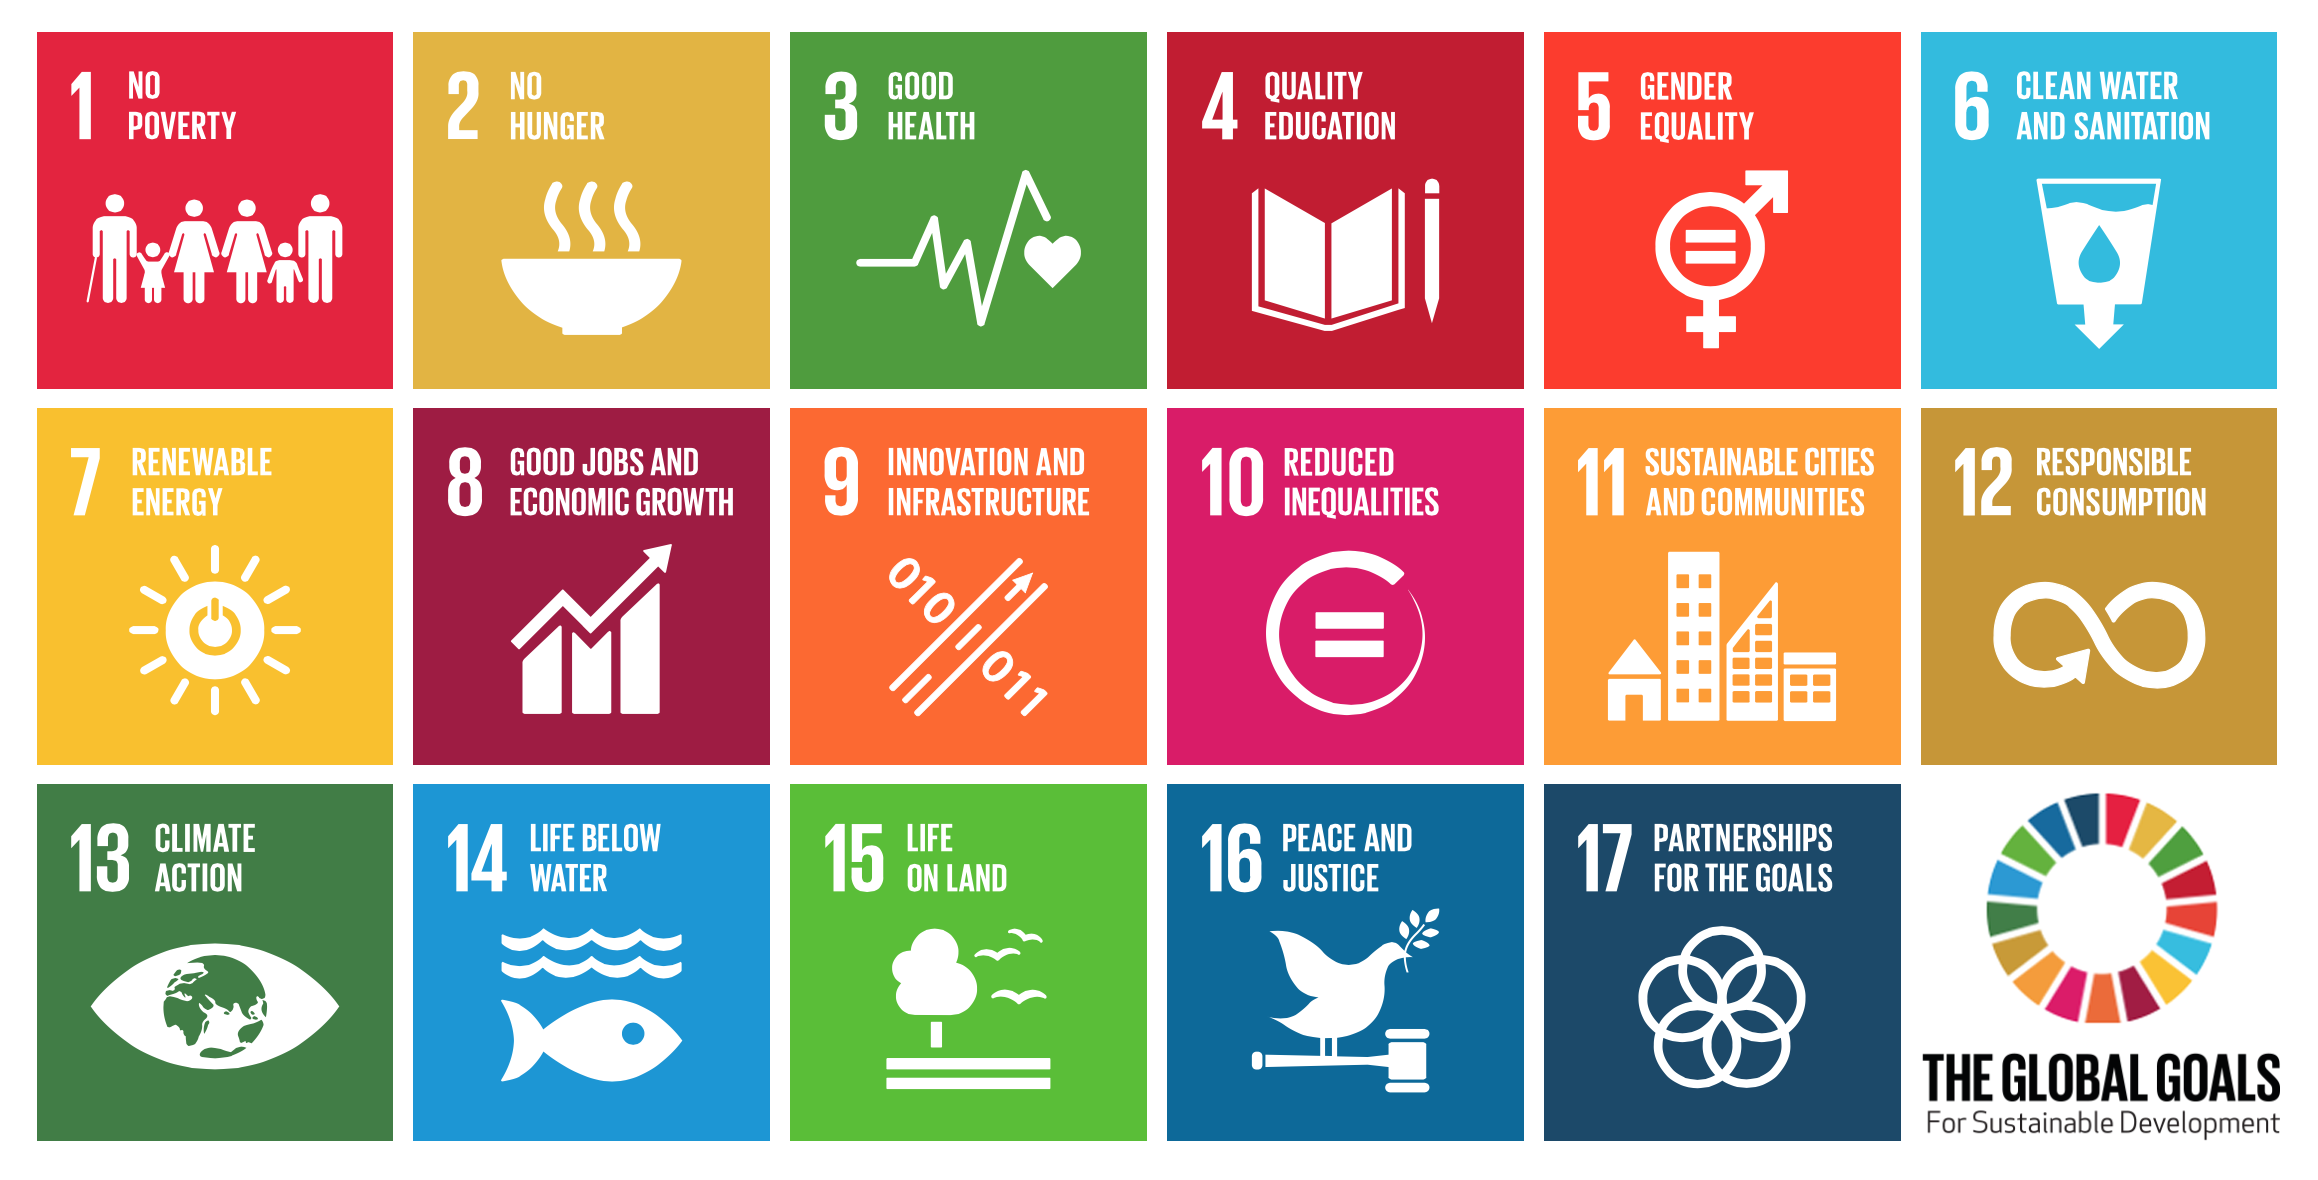 Can the sustainable development goals help transform the world by 2030?